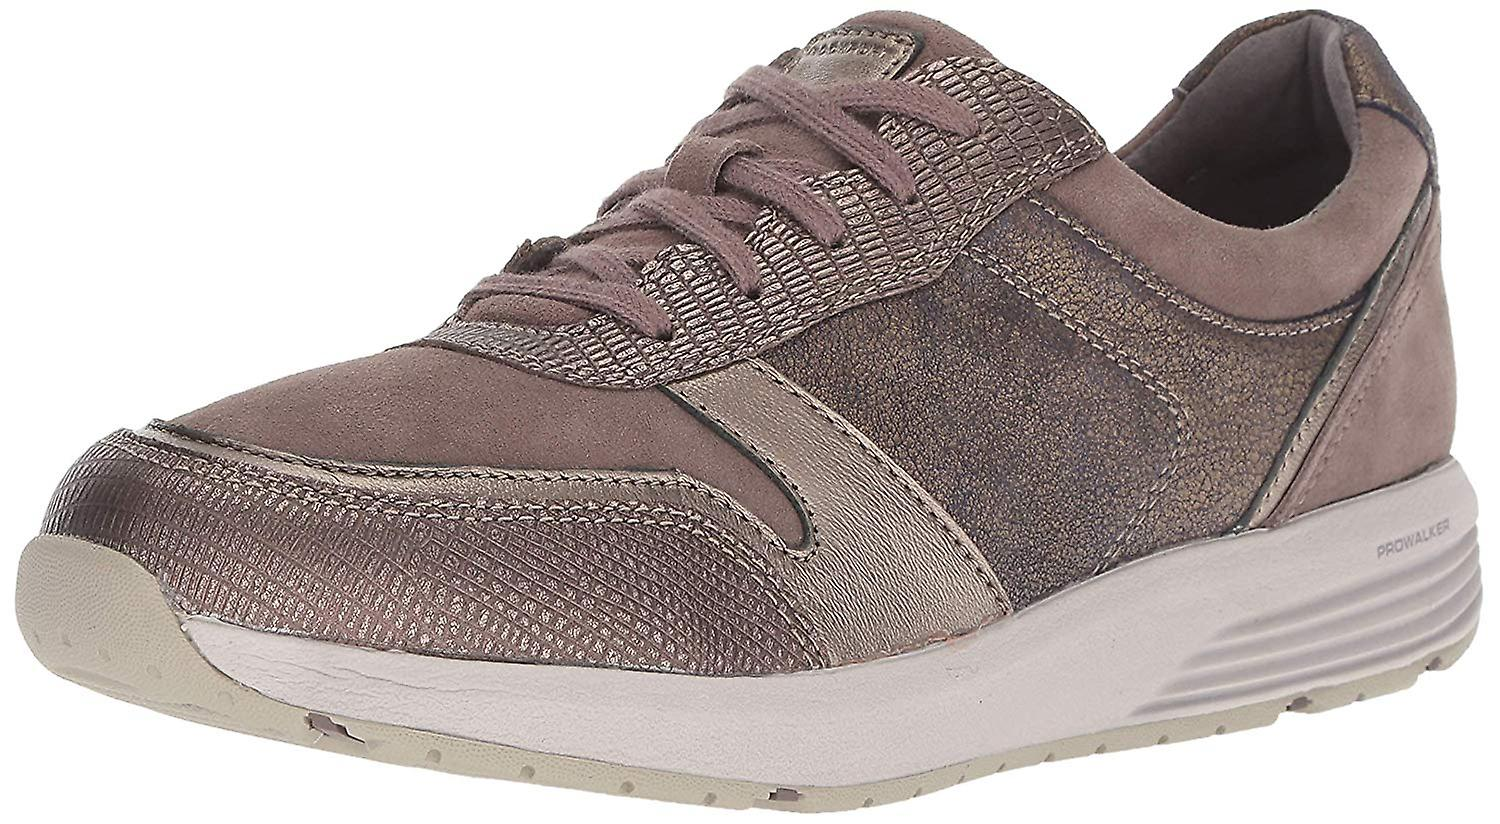 Rockport Womens Truststride Low Top Lace Up Fashion Sneakers 45oF3